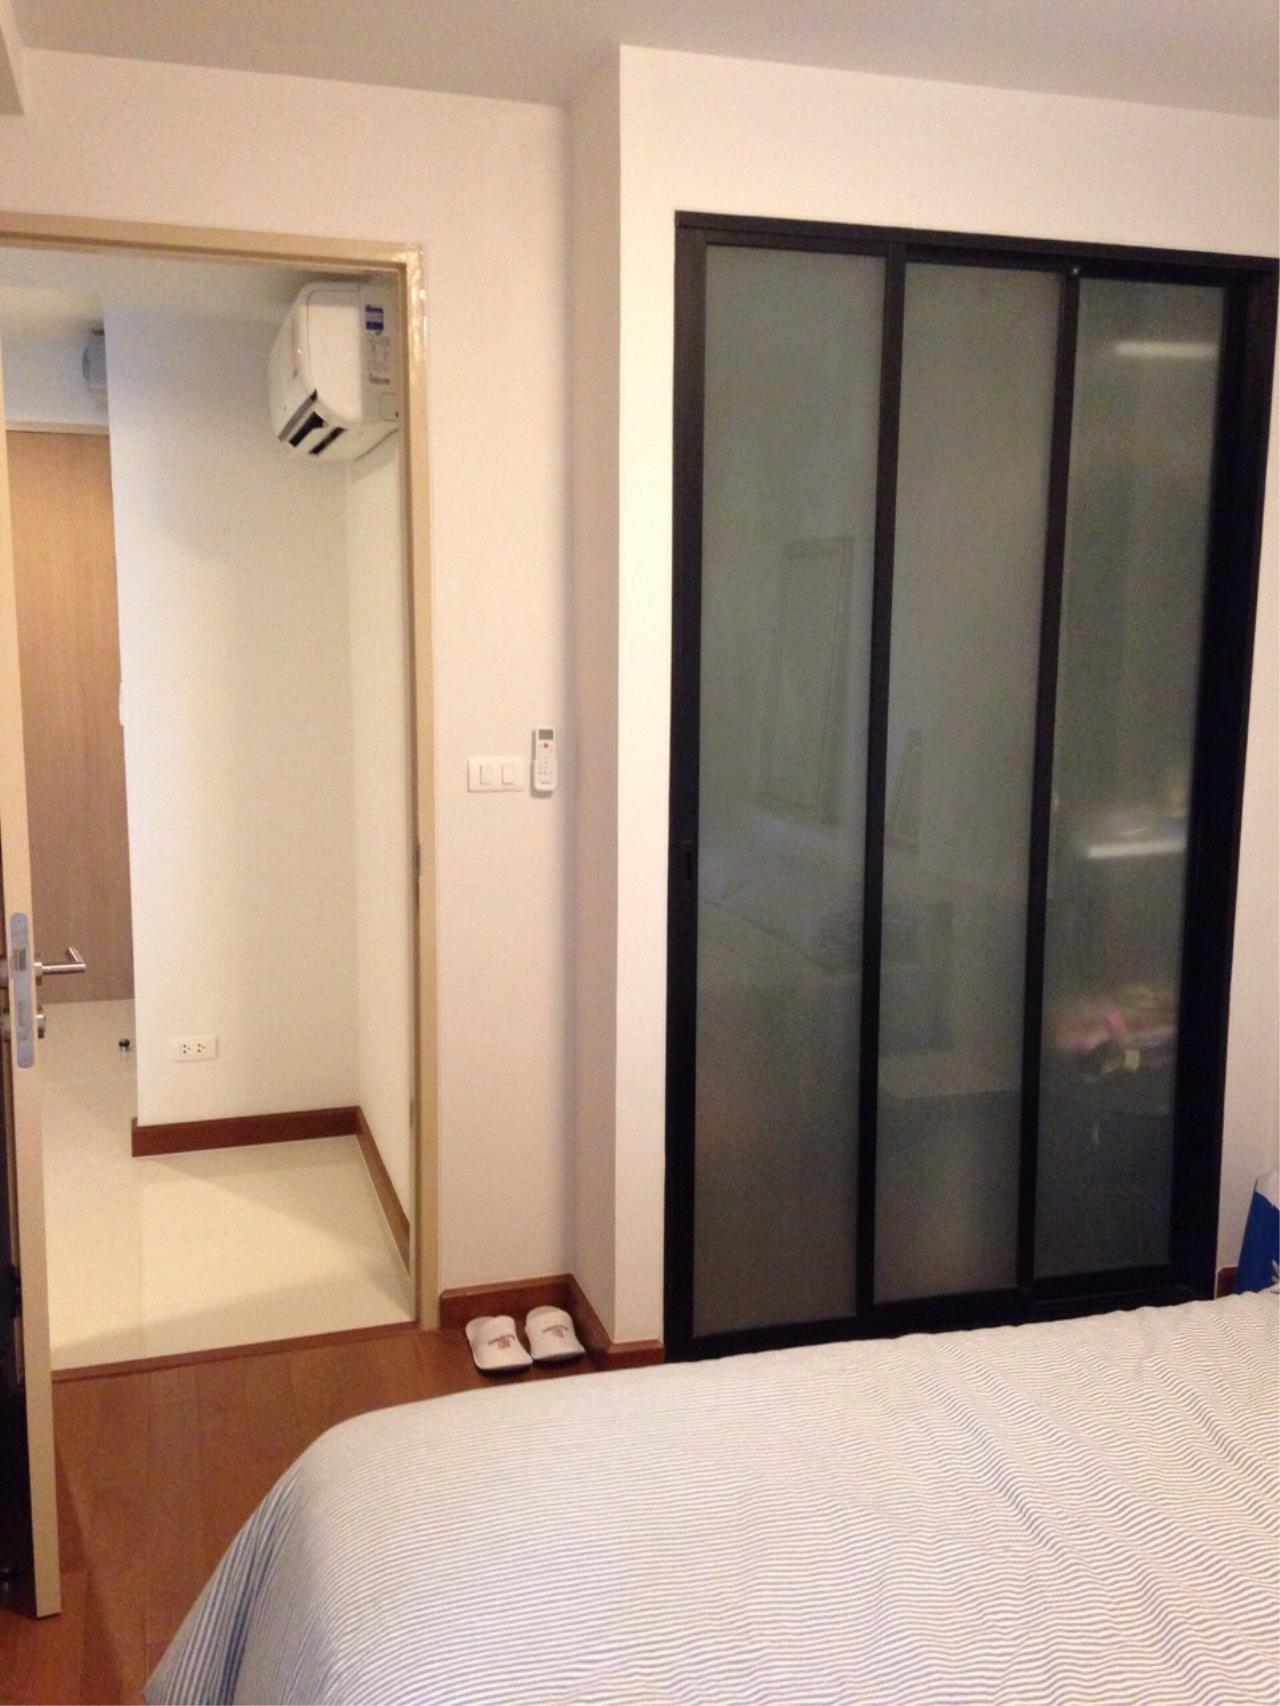 Siam Prop Agency's One Bedroom@Le Cote 8 Thonglor, Rent 23,000 / Sell  4.2Mb 10